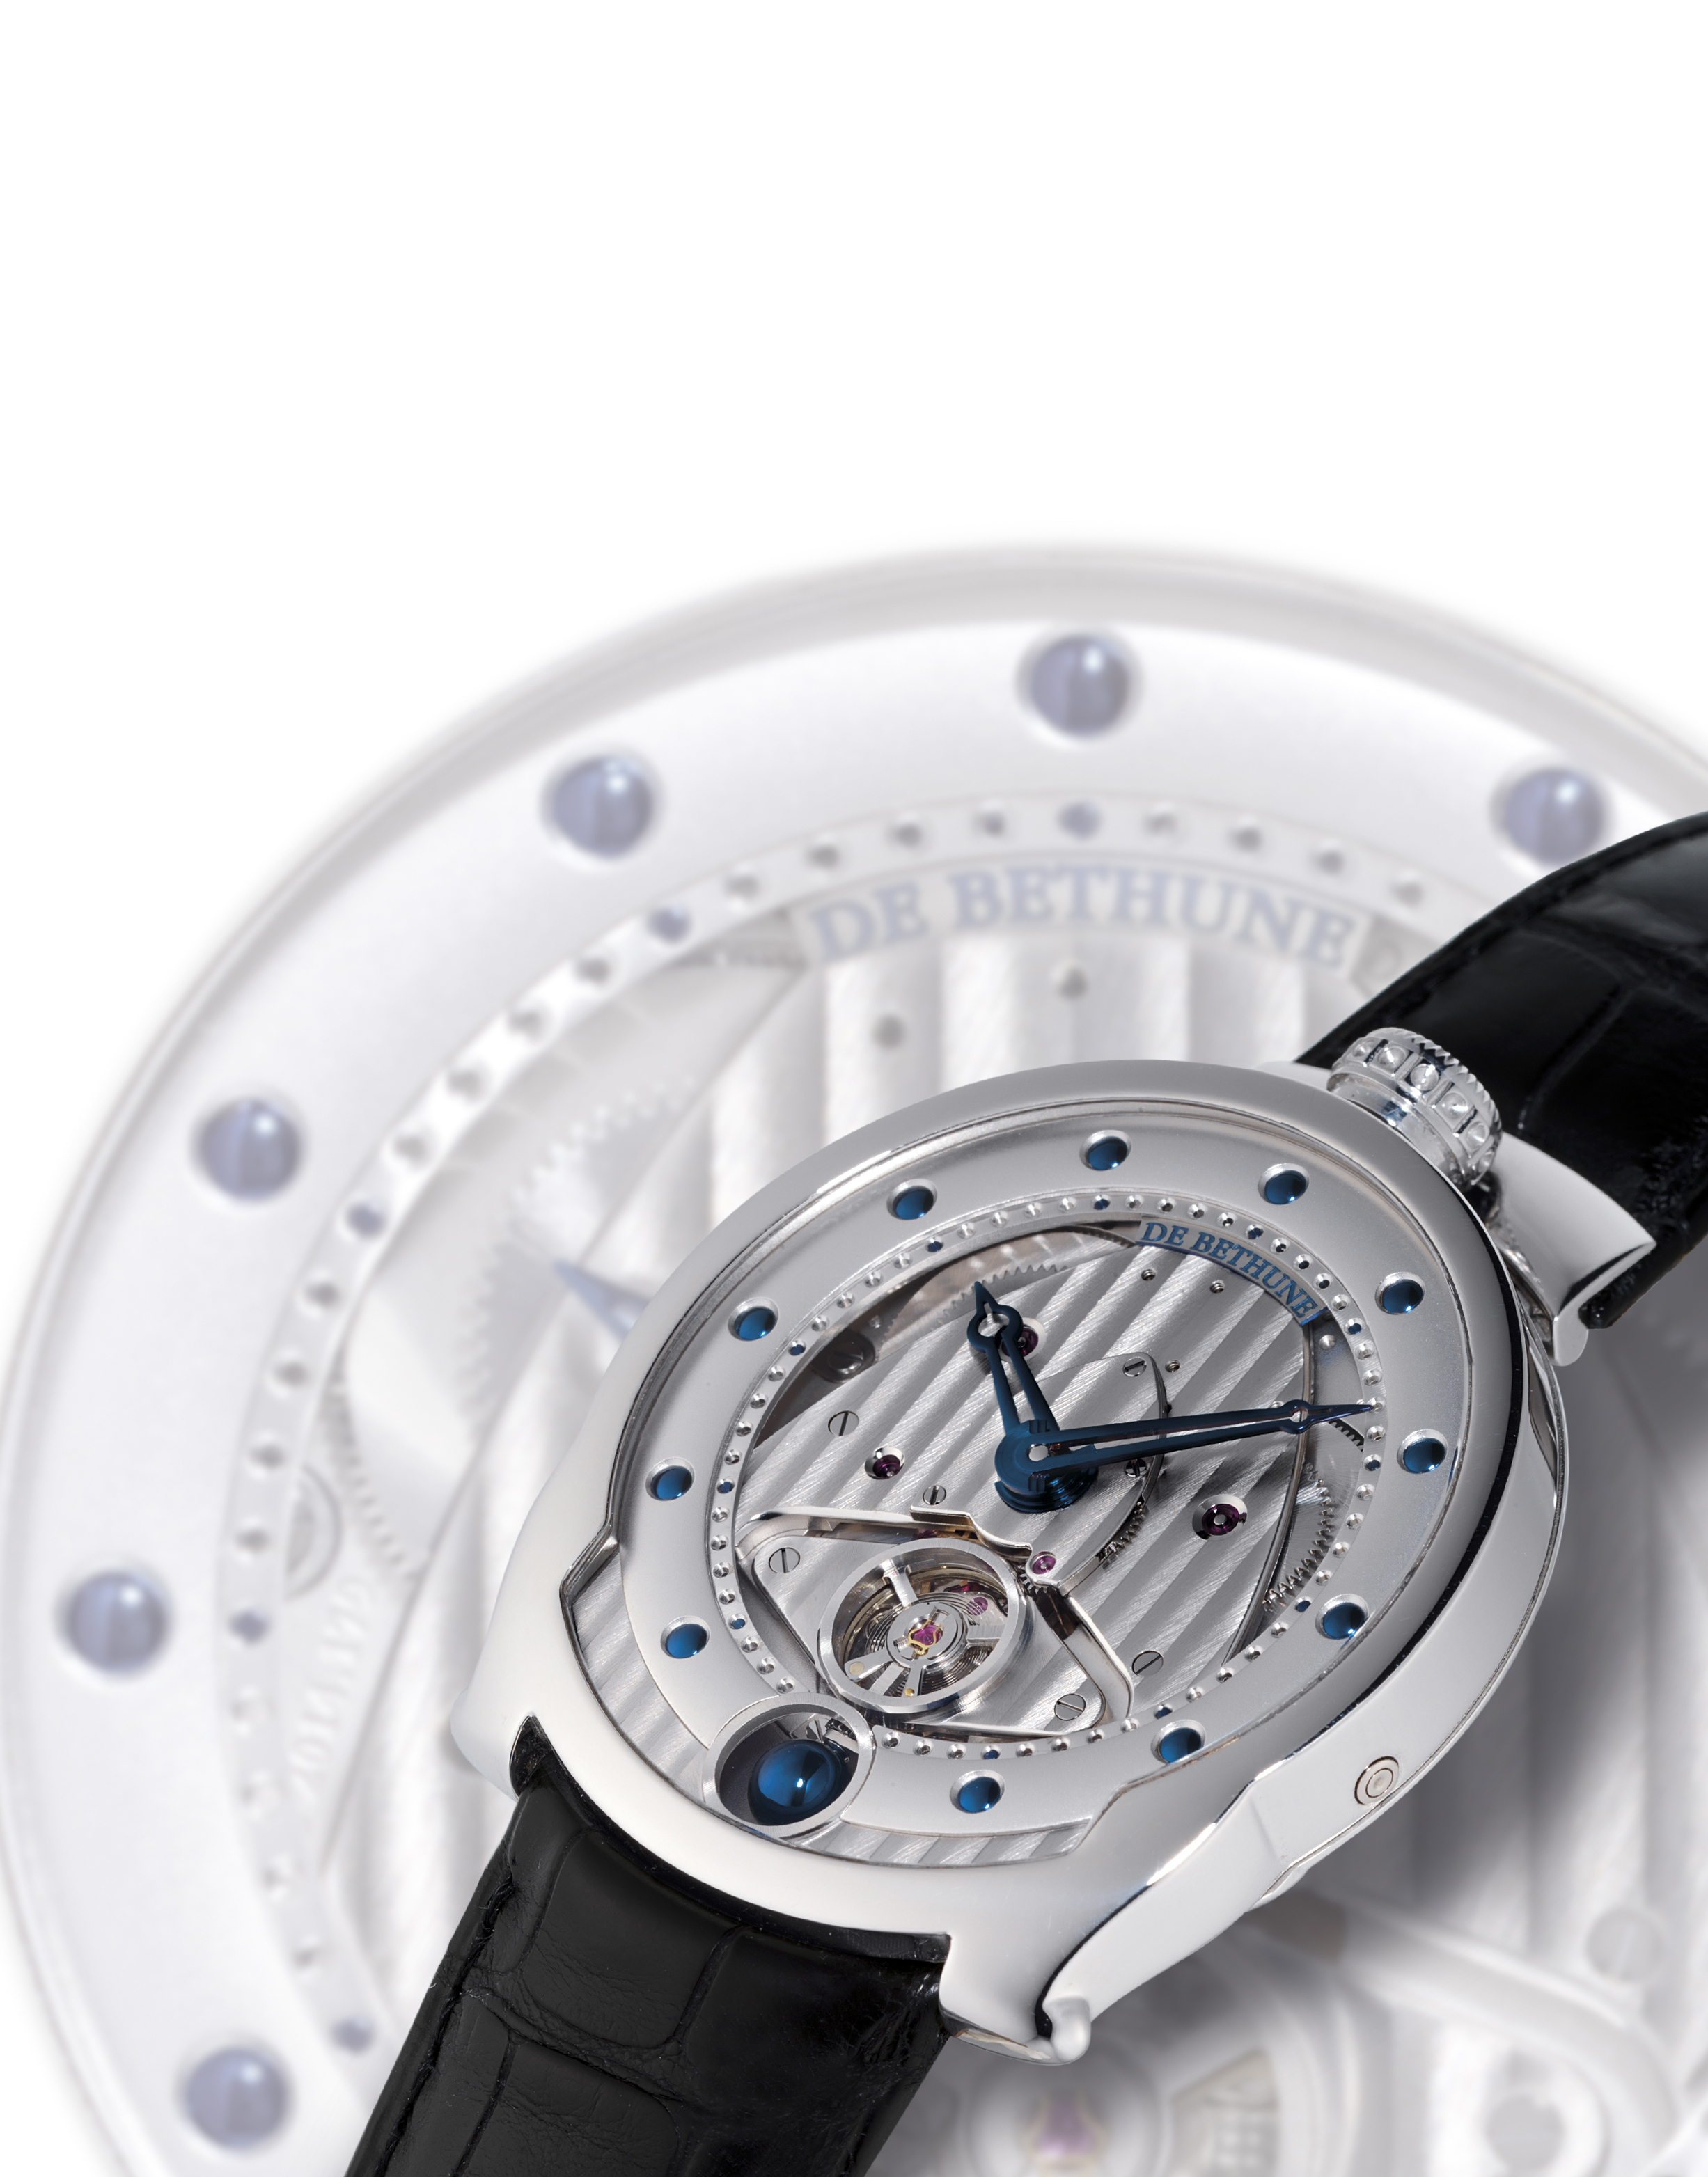 DE BETHUNE, THE PLATINUM DBS-P  PLATINUM MANUALLY-WOUND WRISTWATCH WITH POWER RESERVE INDICATION AND THREE-DIMENSIONAL MOON PHASE DISPLAY